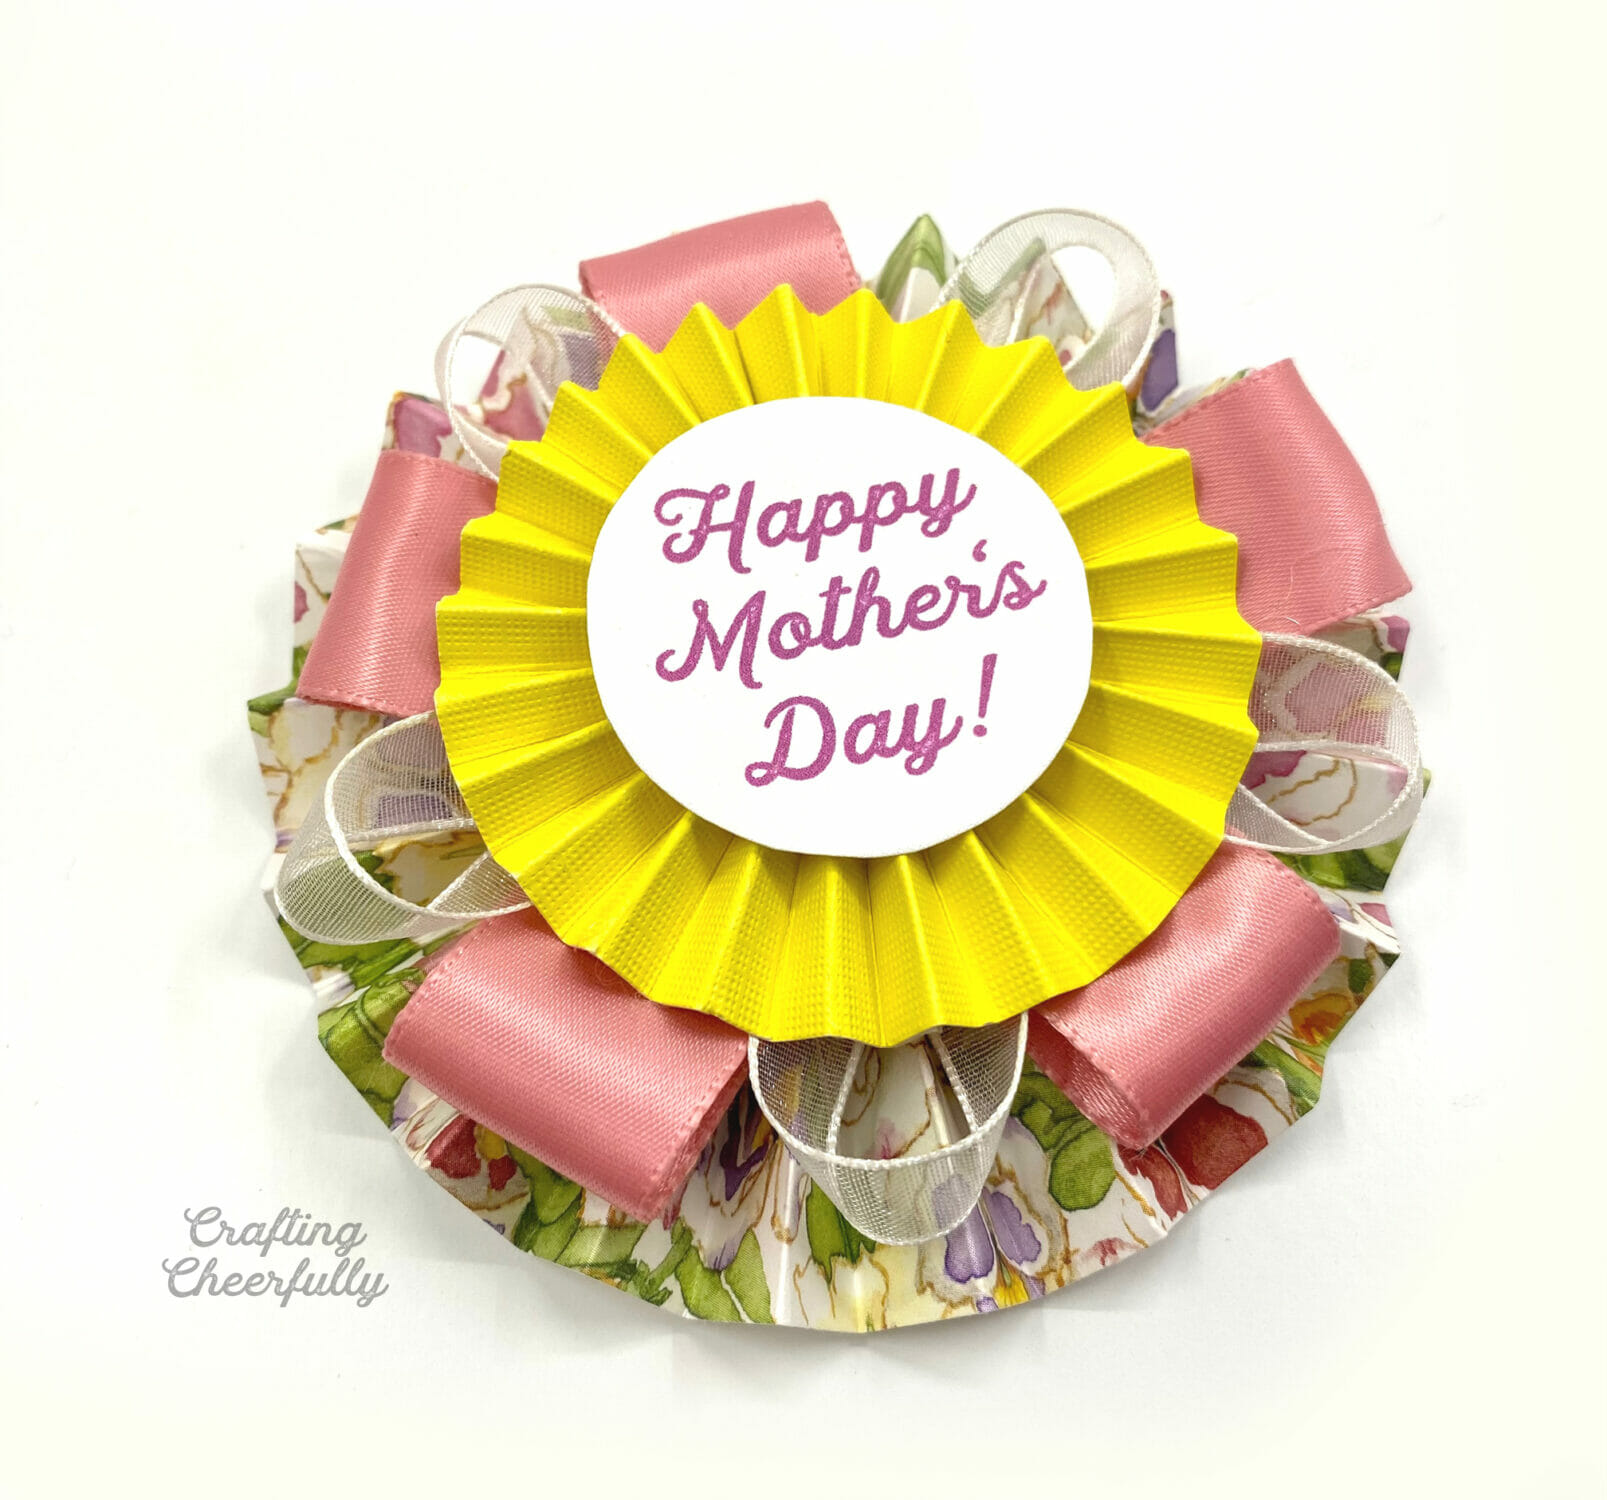 Mother's Day paper pin medallion is assembled and sitting on a white surface.